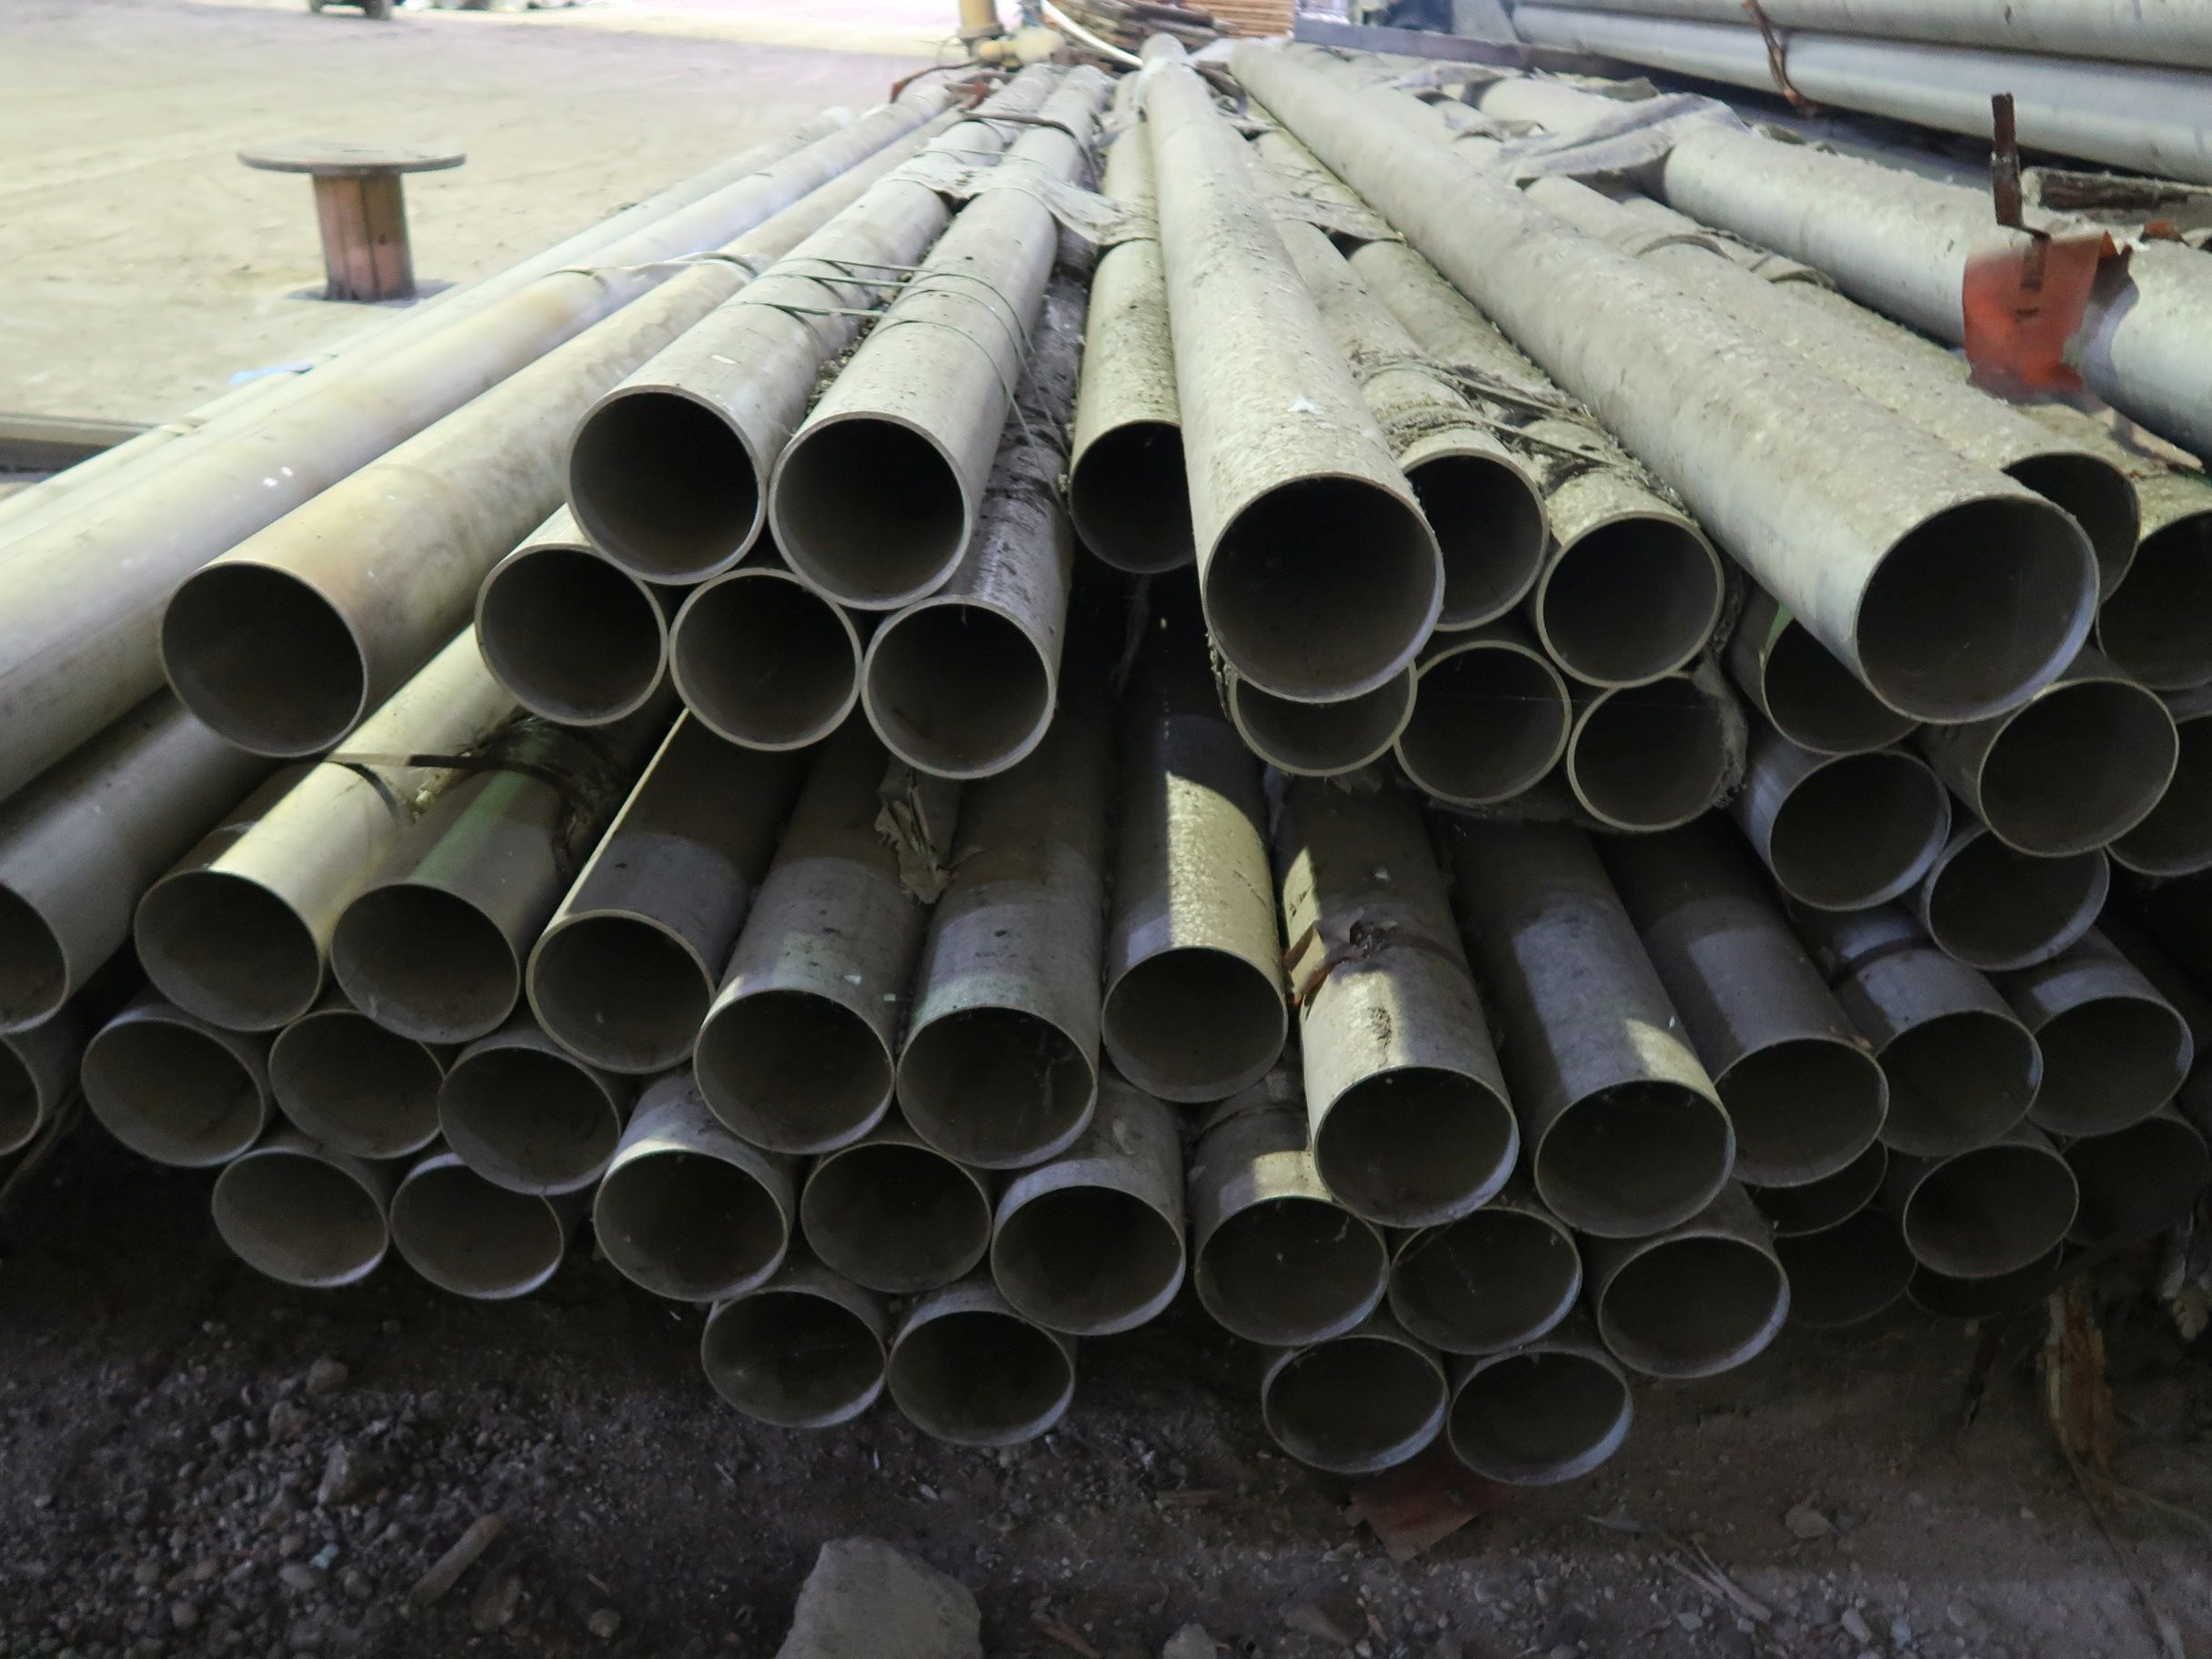 """Lot 313 - LARGE QUANTITY STAINLESS STEEL MATERIAL INCLUDING 6"""" DIAMETER X 20' LONG PIPE, 3"""" PIPE, ASSORTED"""